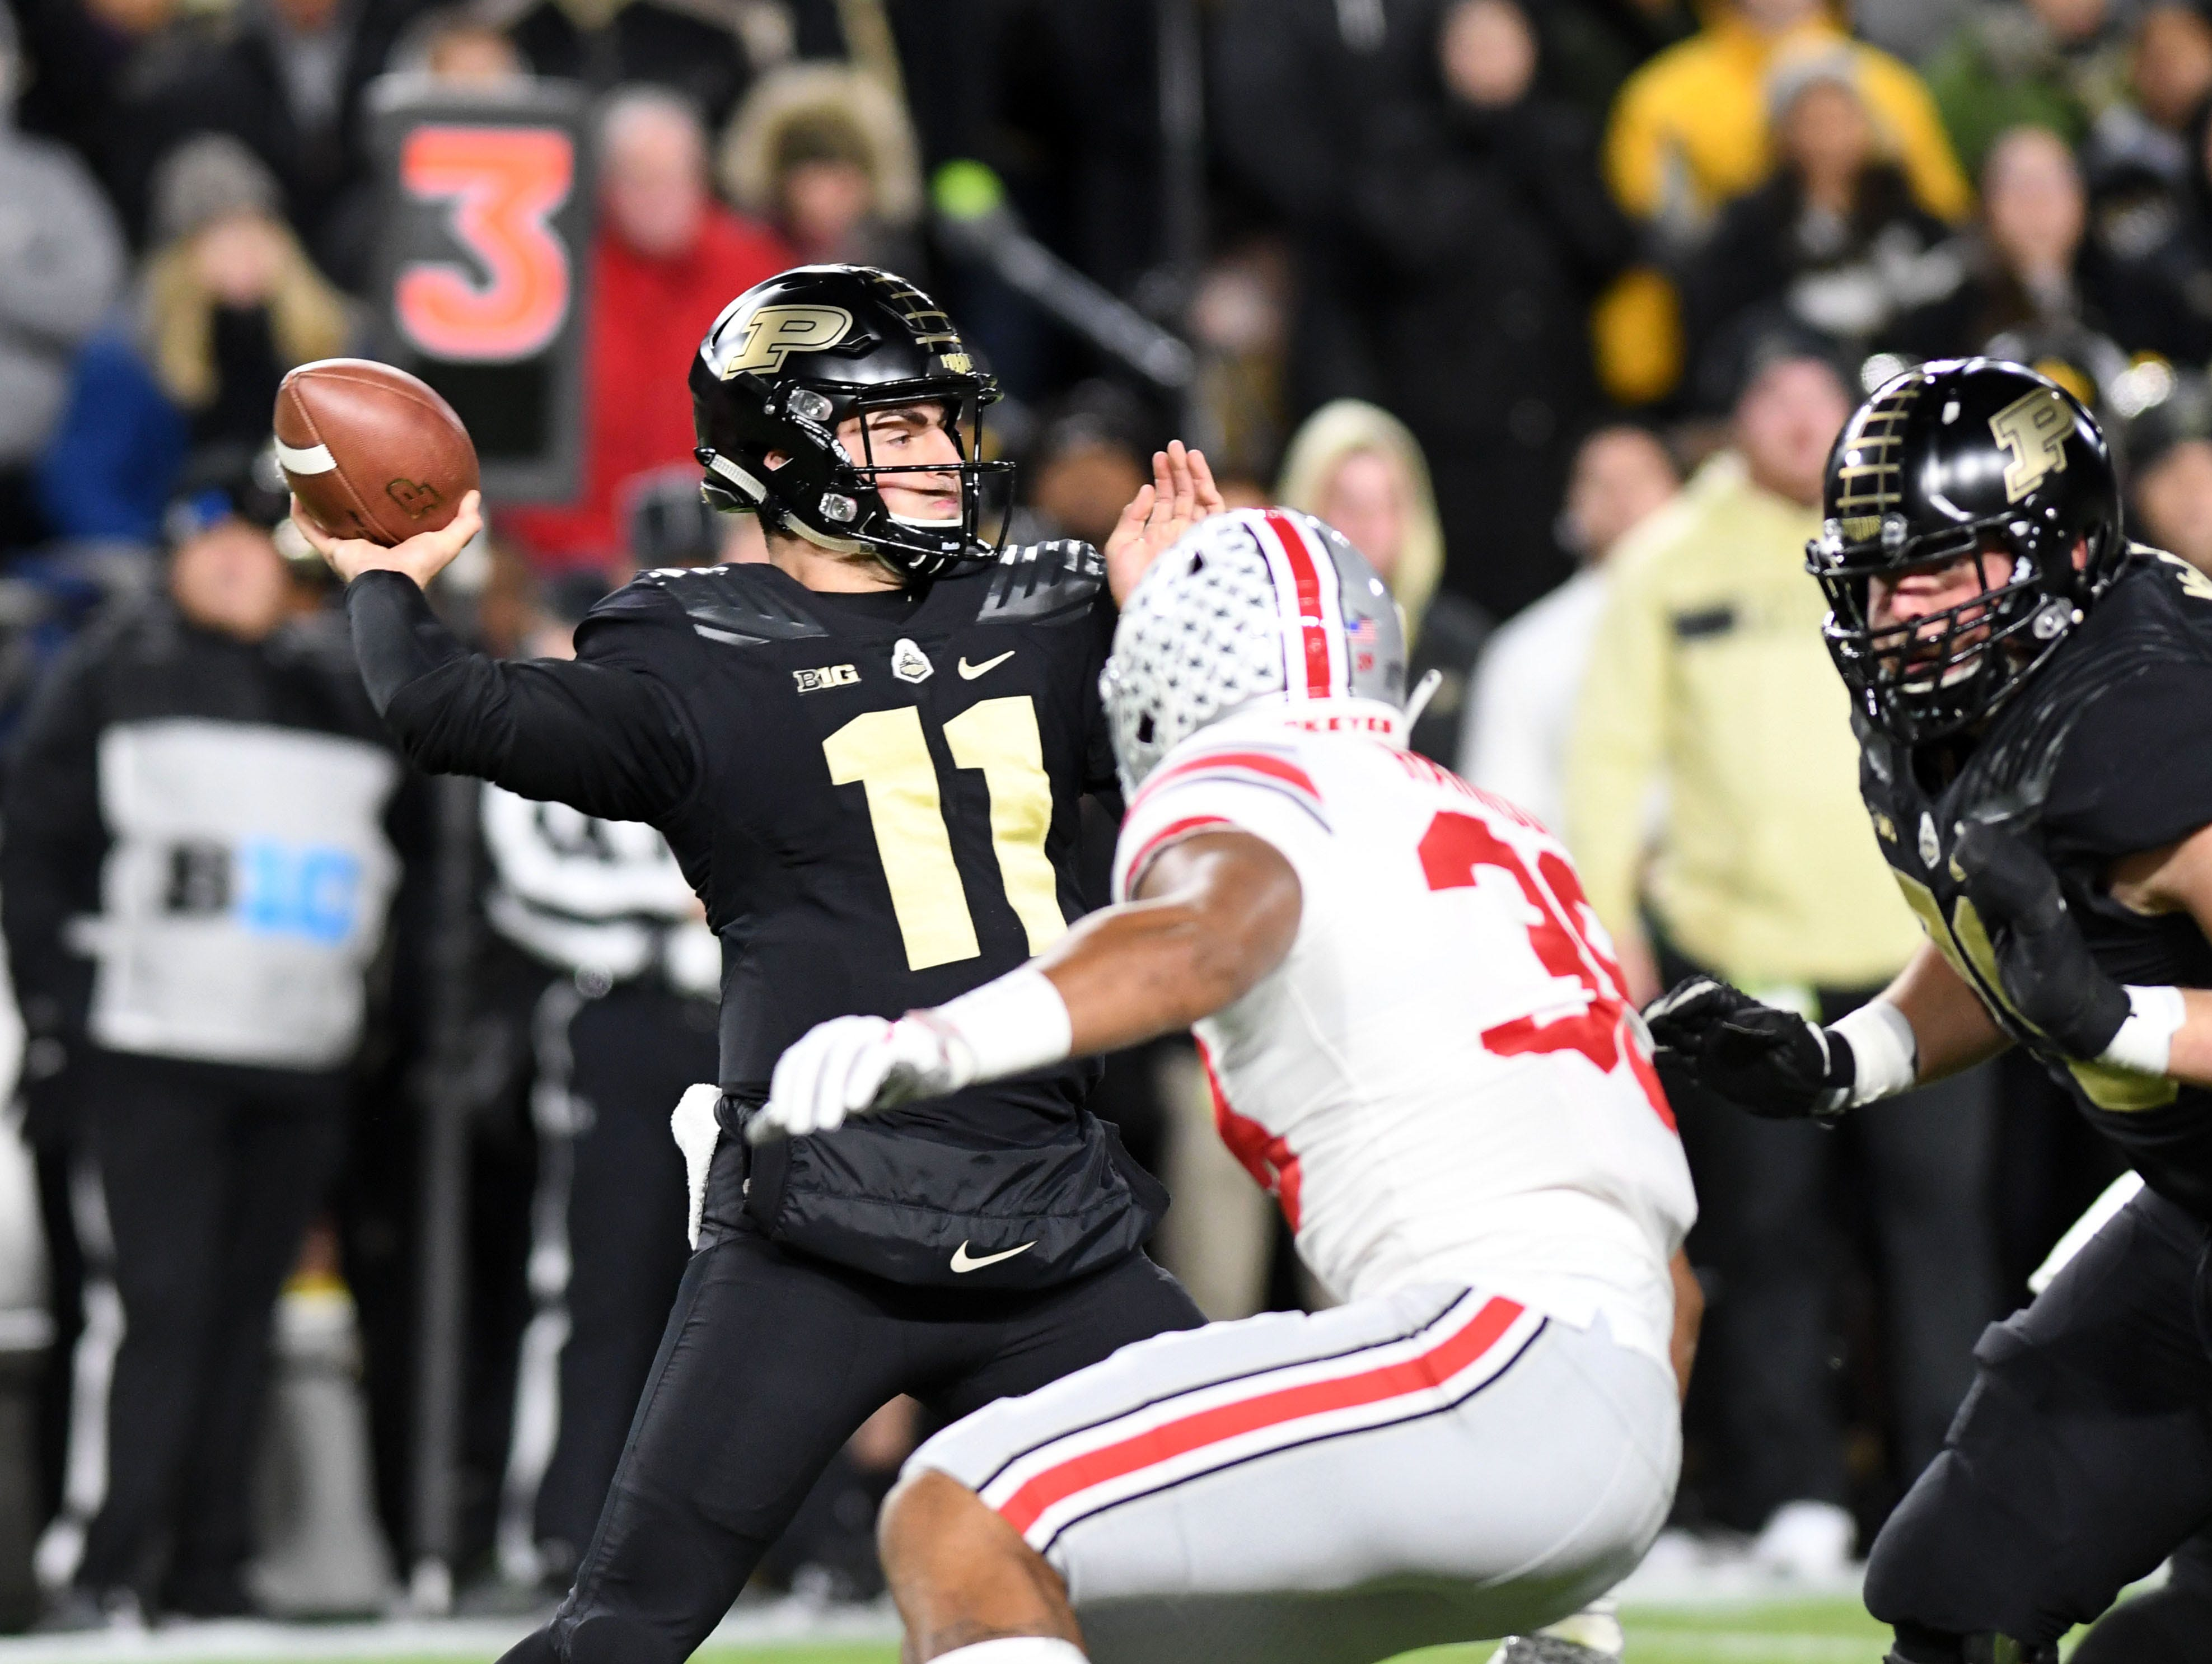 Oct 20, 2018; West Lafayette, IN, USA; Purdue Boilermakers quarterback  David Blough (11) drops back to pass in the first half against the Ohio State Buckeyes at Ross-Ade Stadium. Mandatory Credit: Thomas J. Russo-USA TODAY Sports